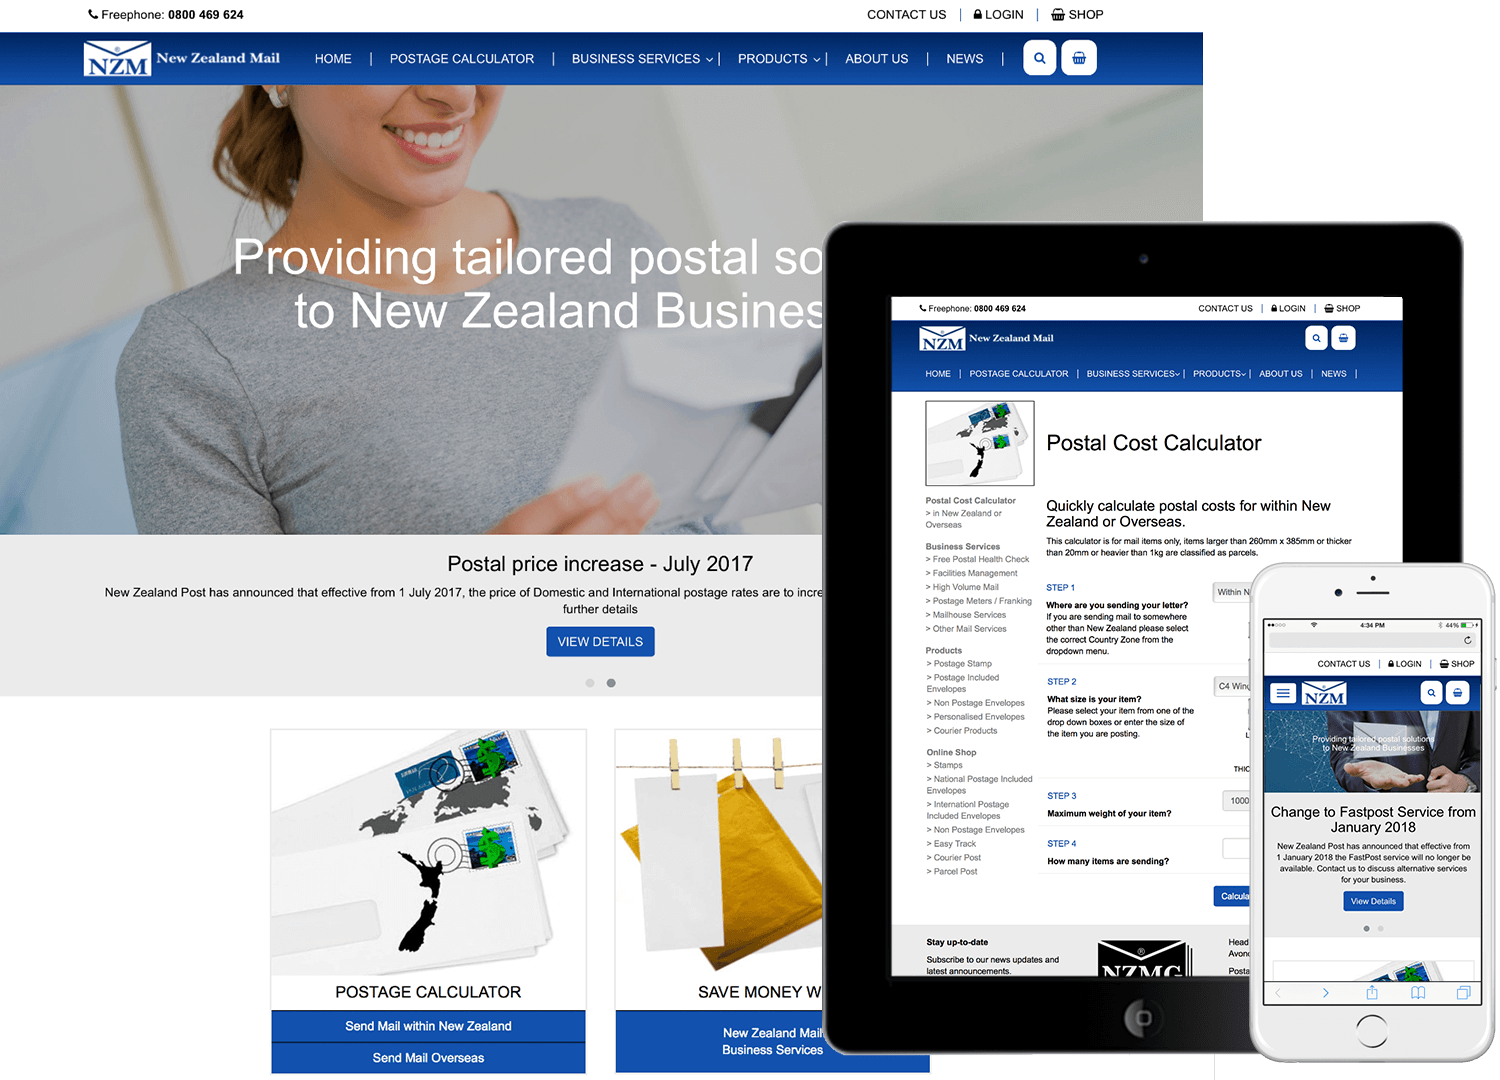 New Zealand Mail